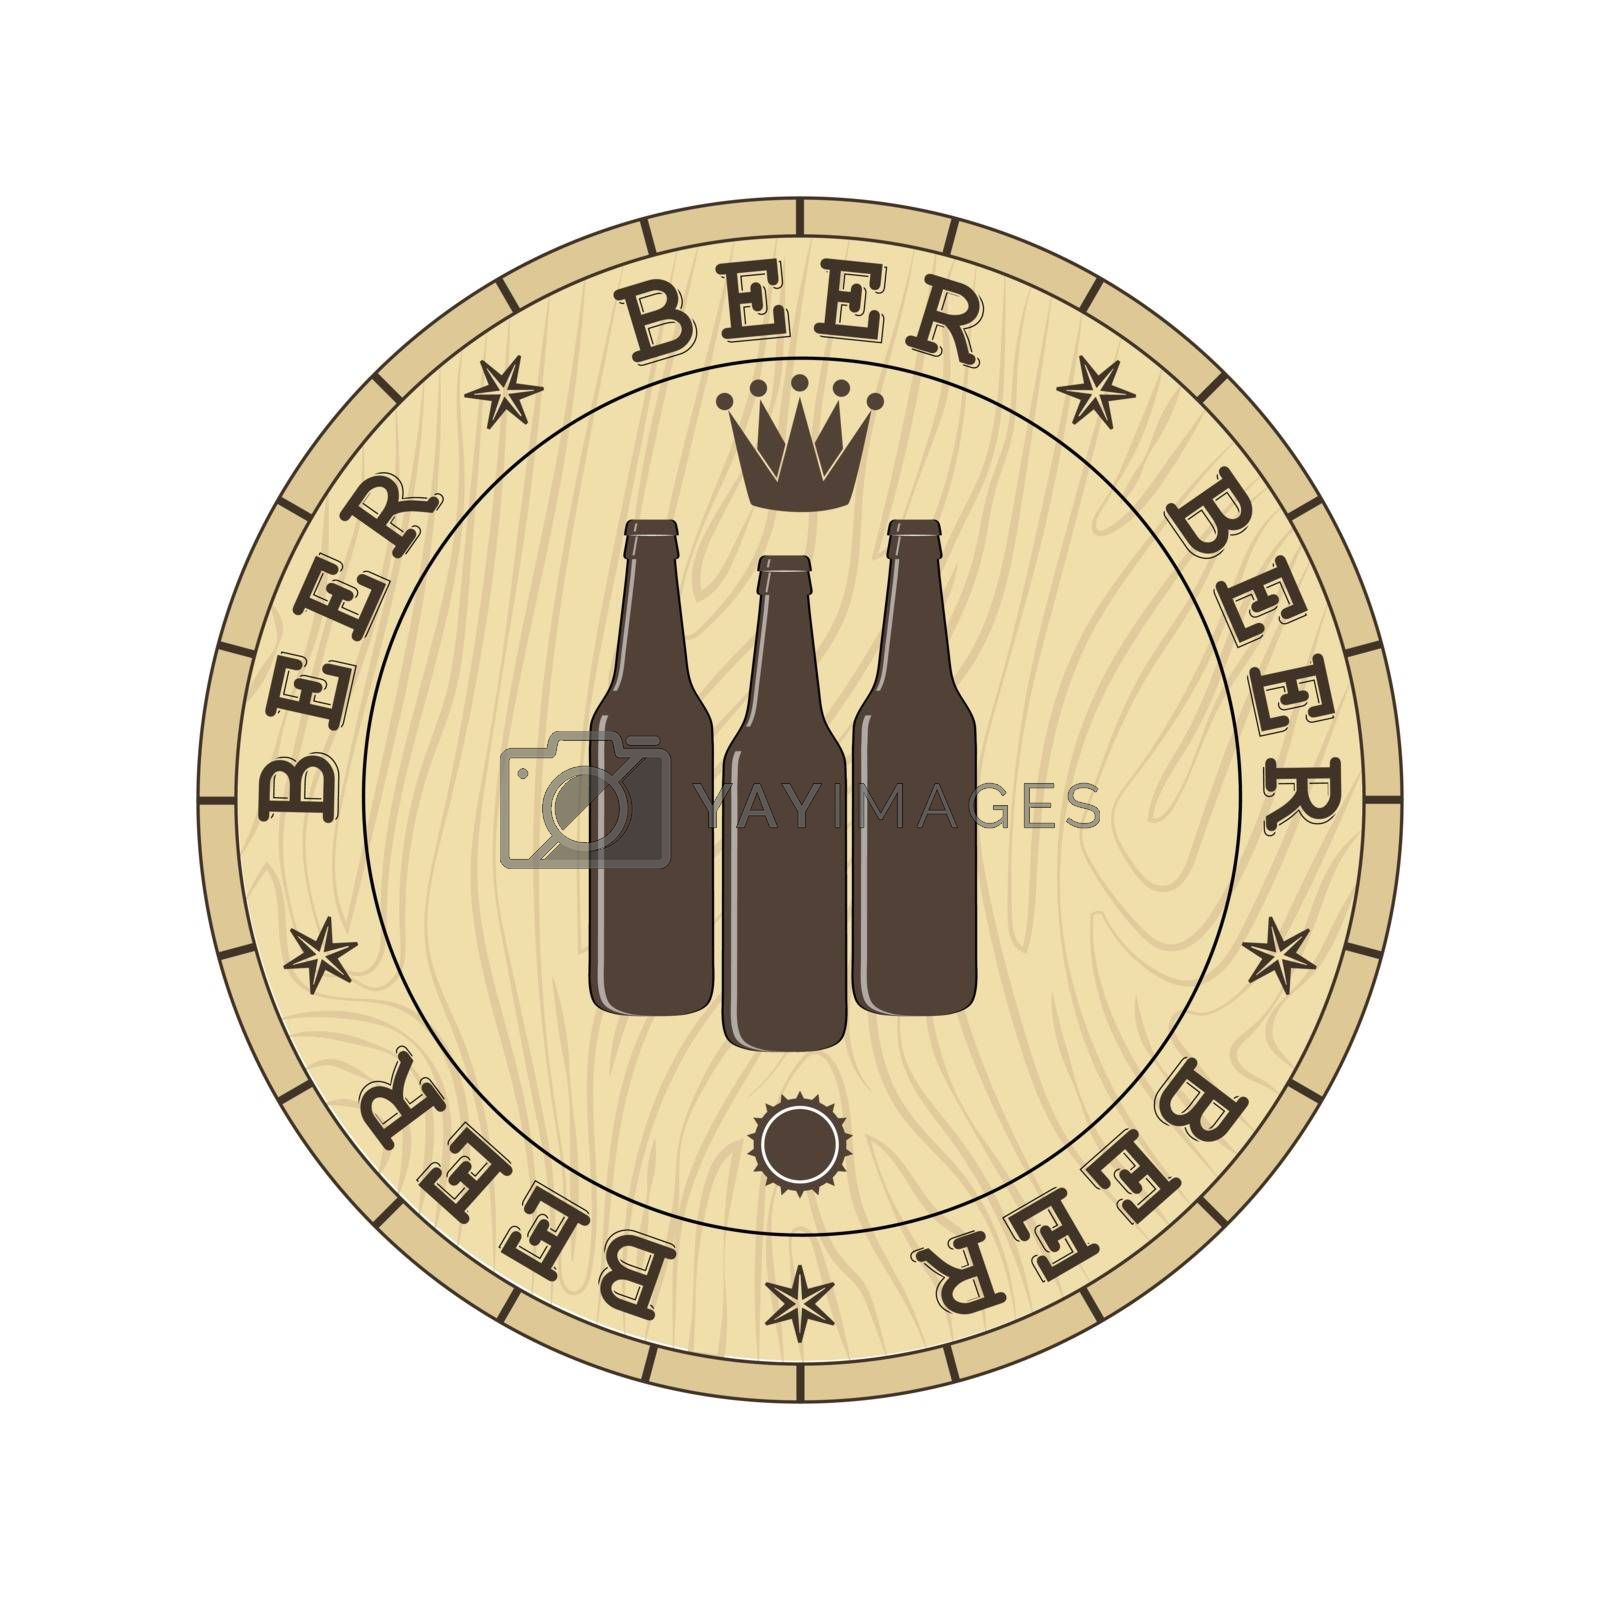 Lid of the barrel with the inscription beer and silhouettes of beer bottles, a simple flat design